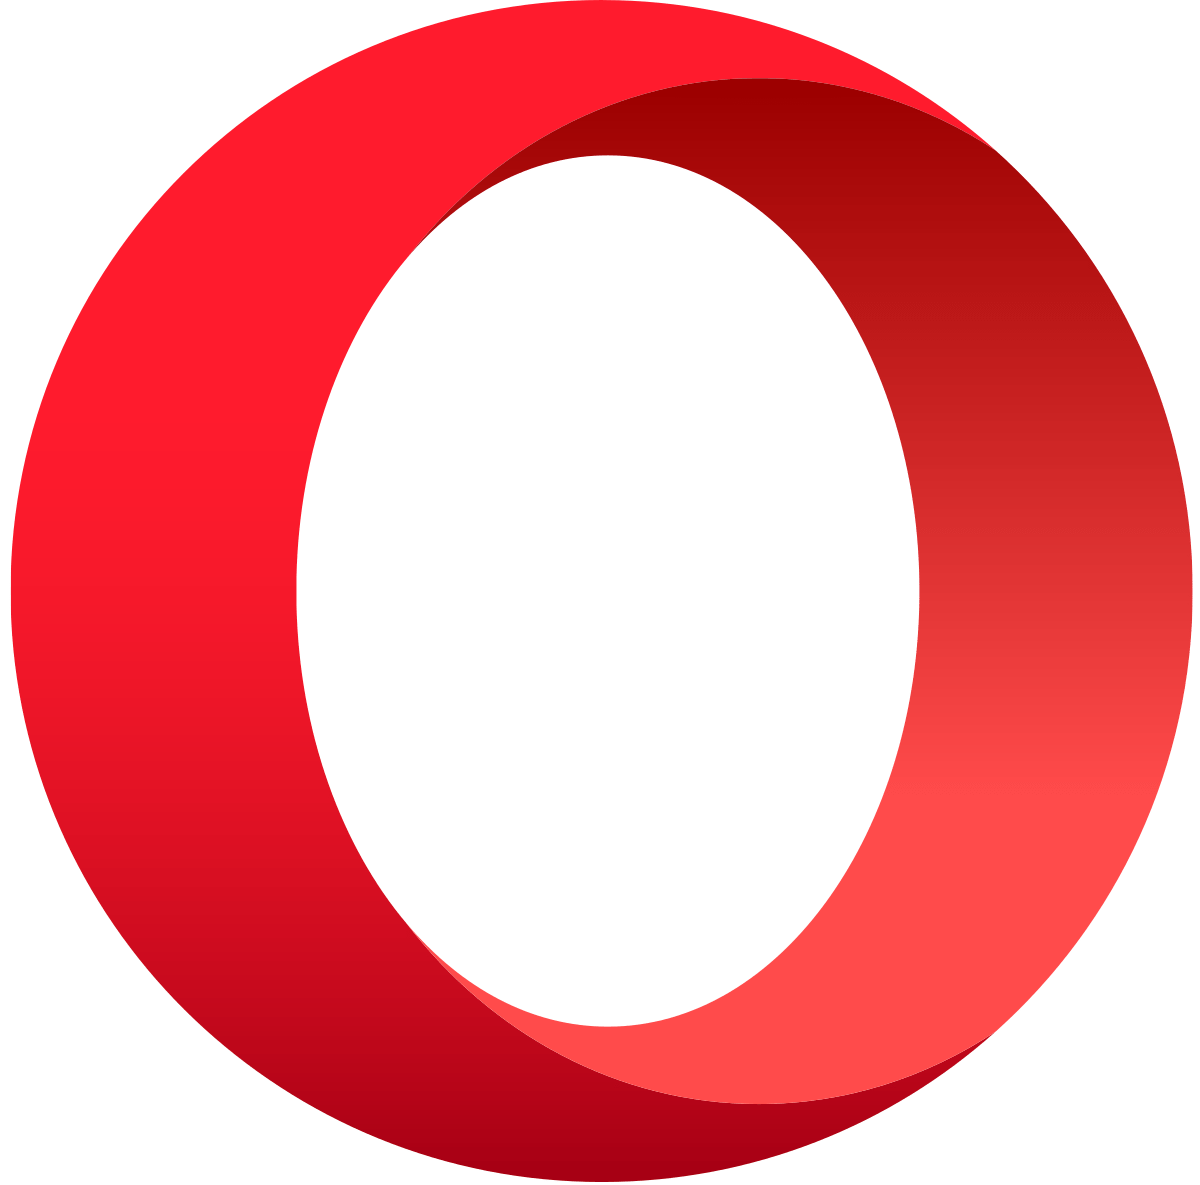 opera browser facts statistics